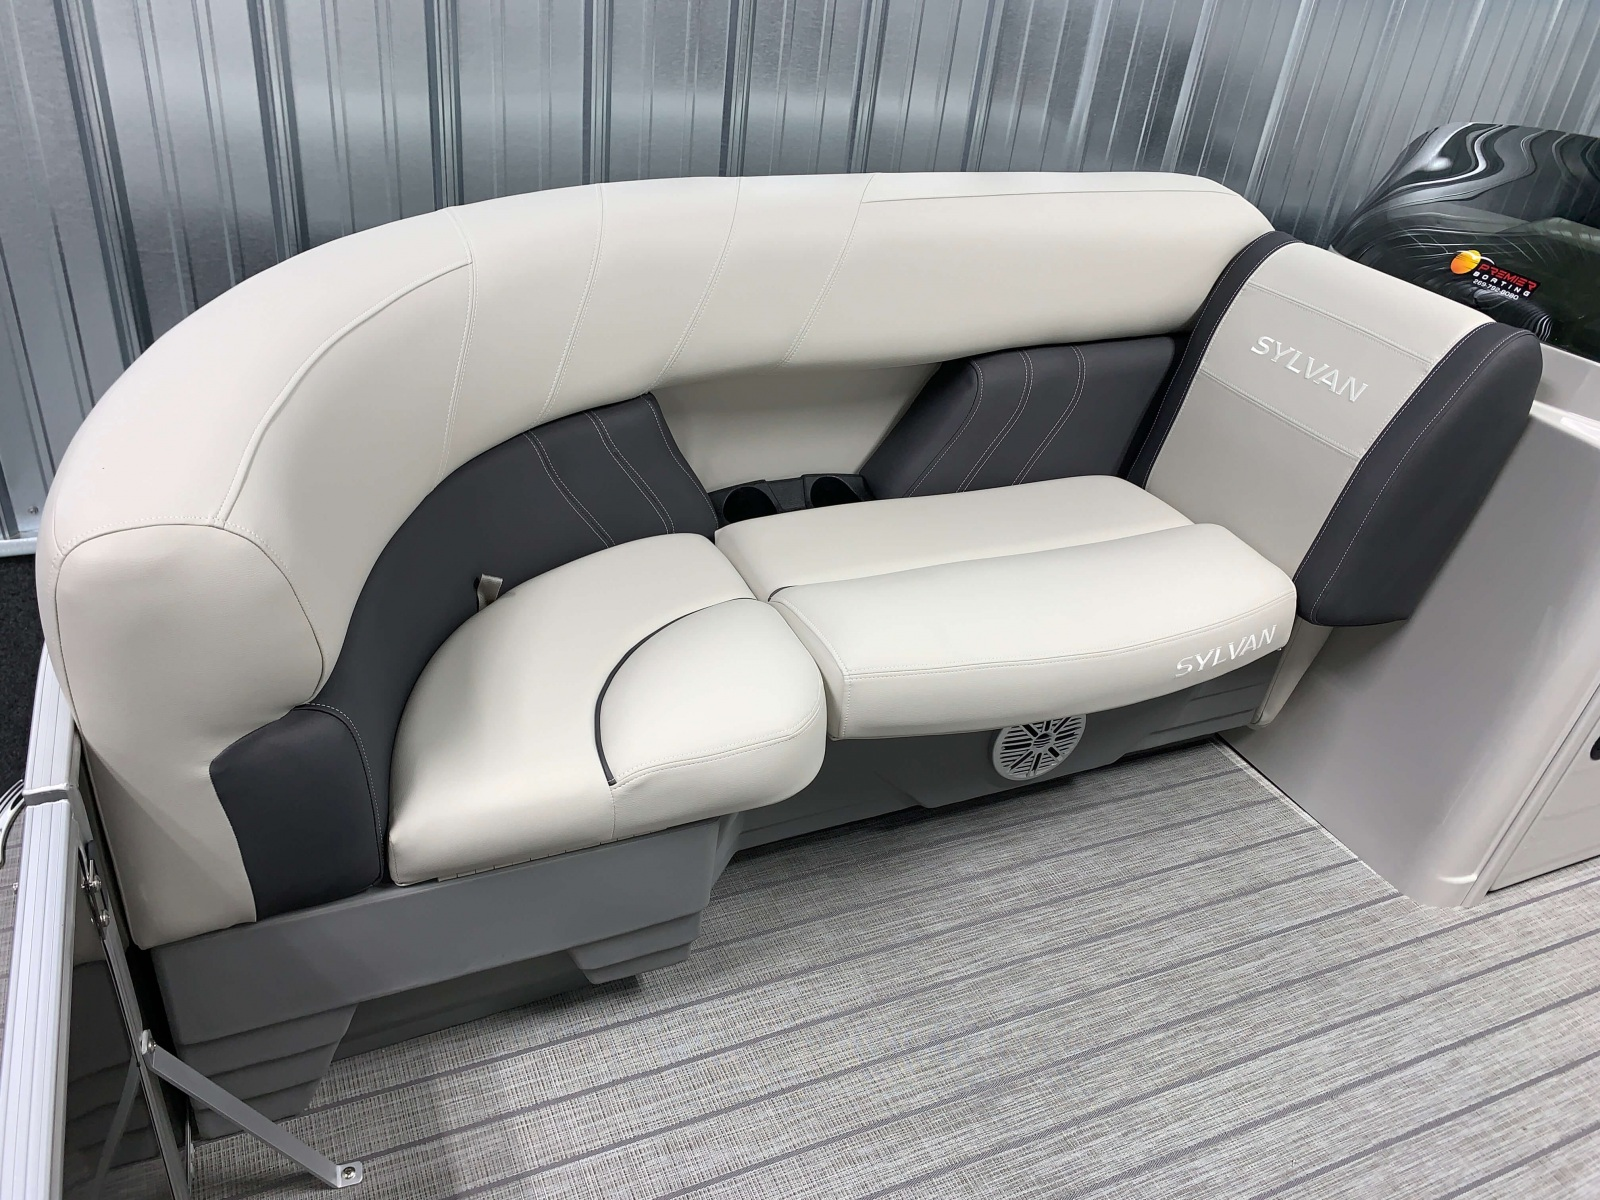 Rotocast Seat Bases of a 2021 Sylvan Mirage 8520 Cruise Tritoon Boat